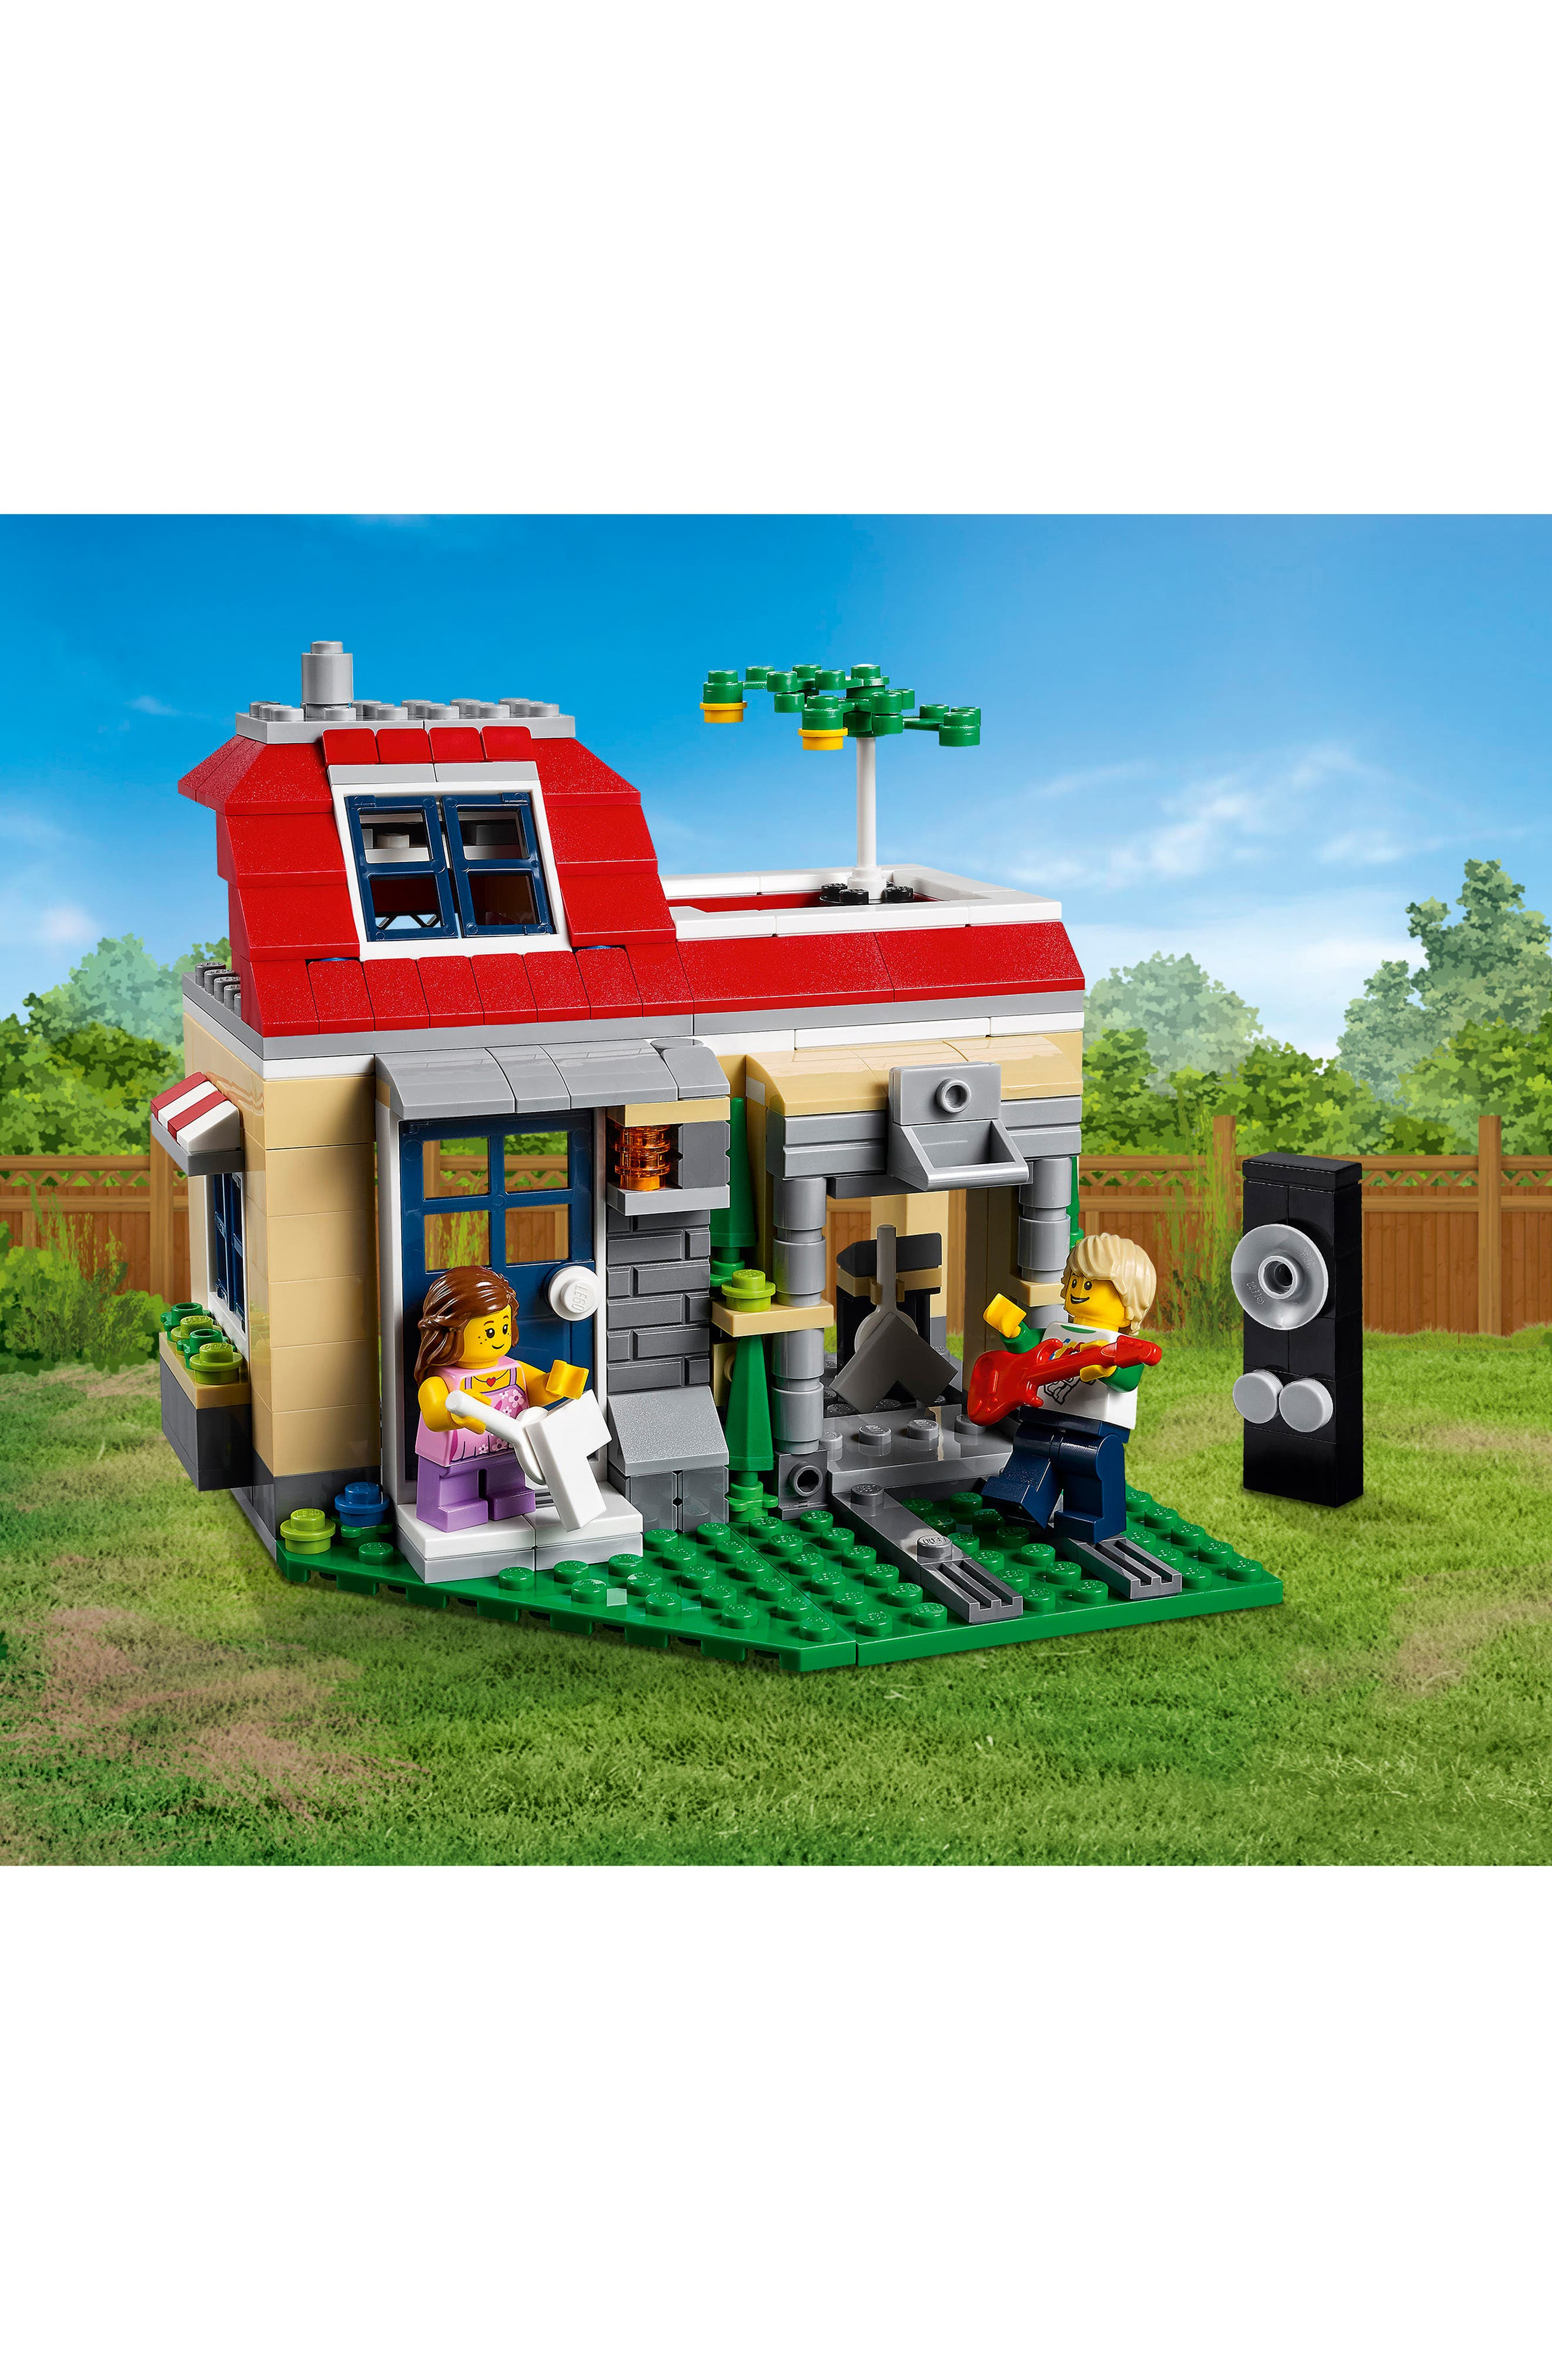 Creator 3-in-1 Modular Poolside Holiday Play Set - 31067,                             Alternate thumbnail 3, color,                             250